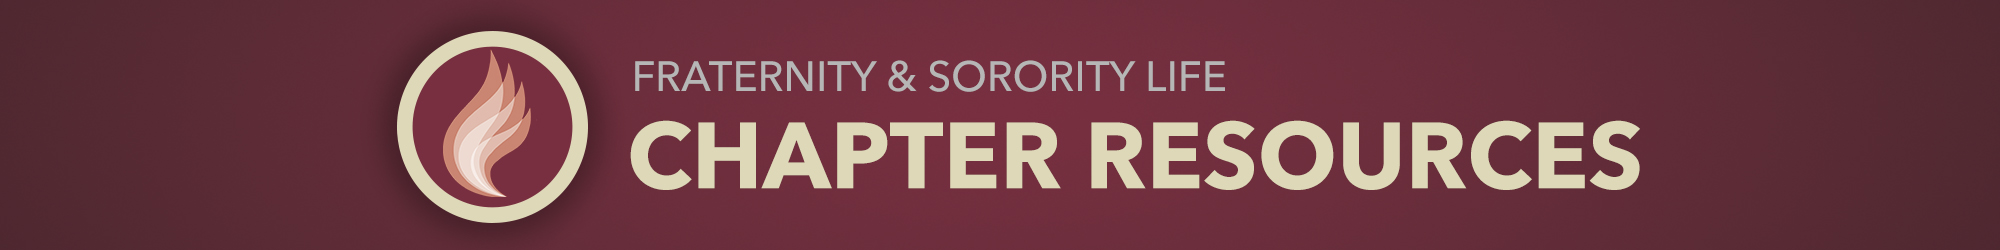 Chapter Resources Banner